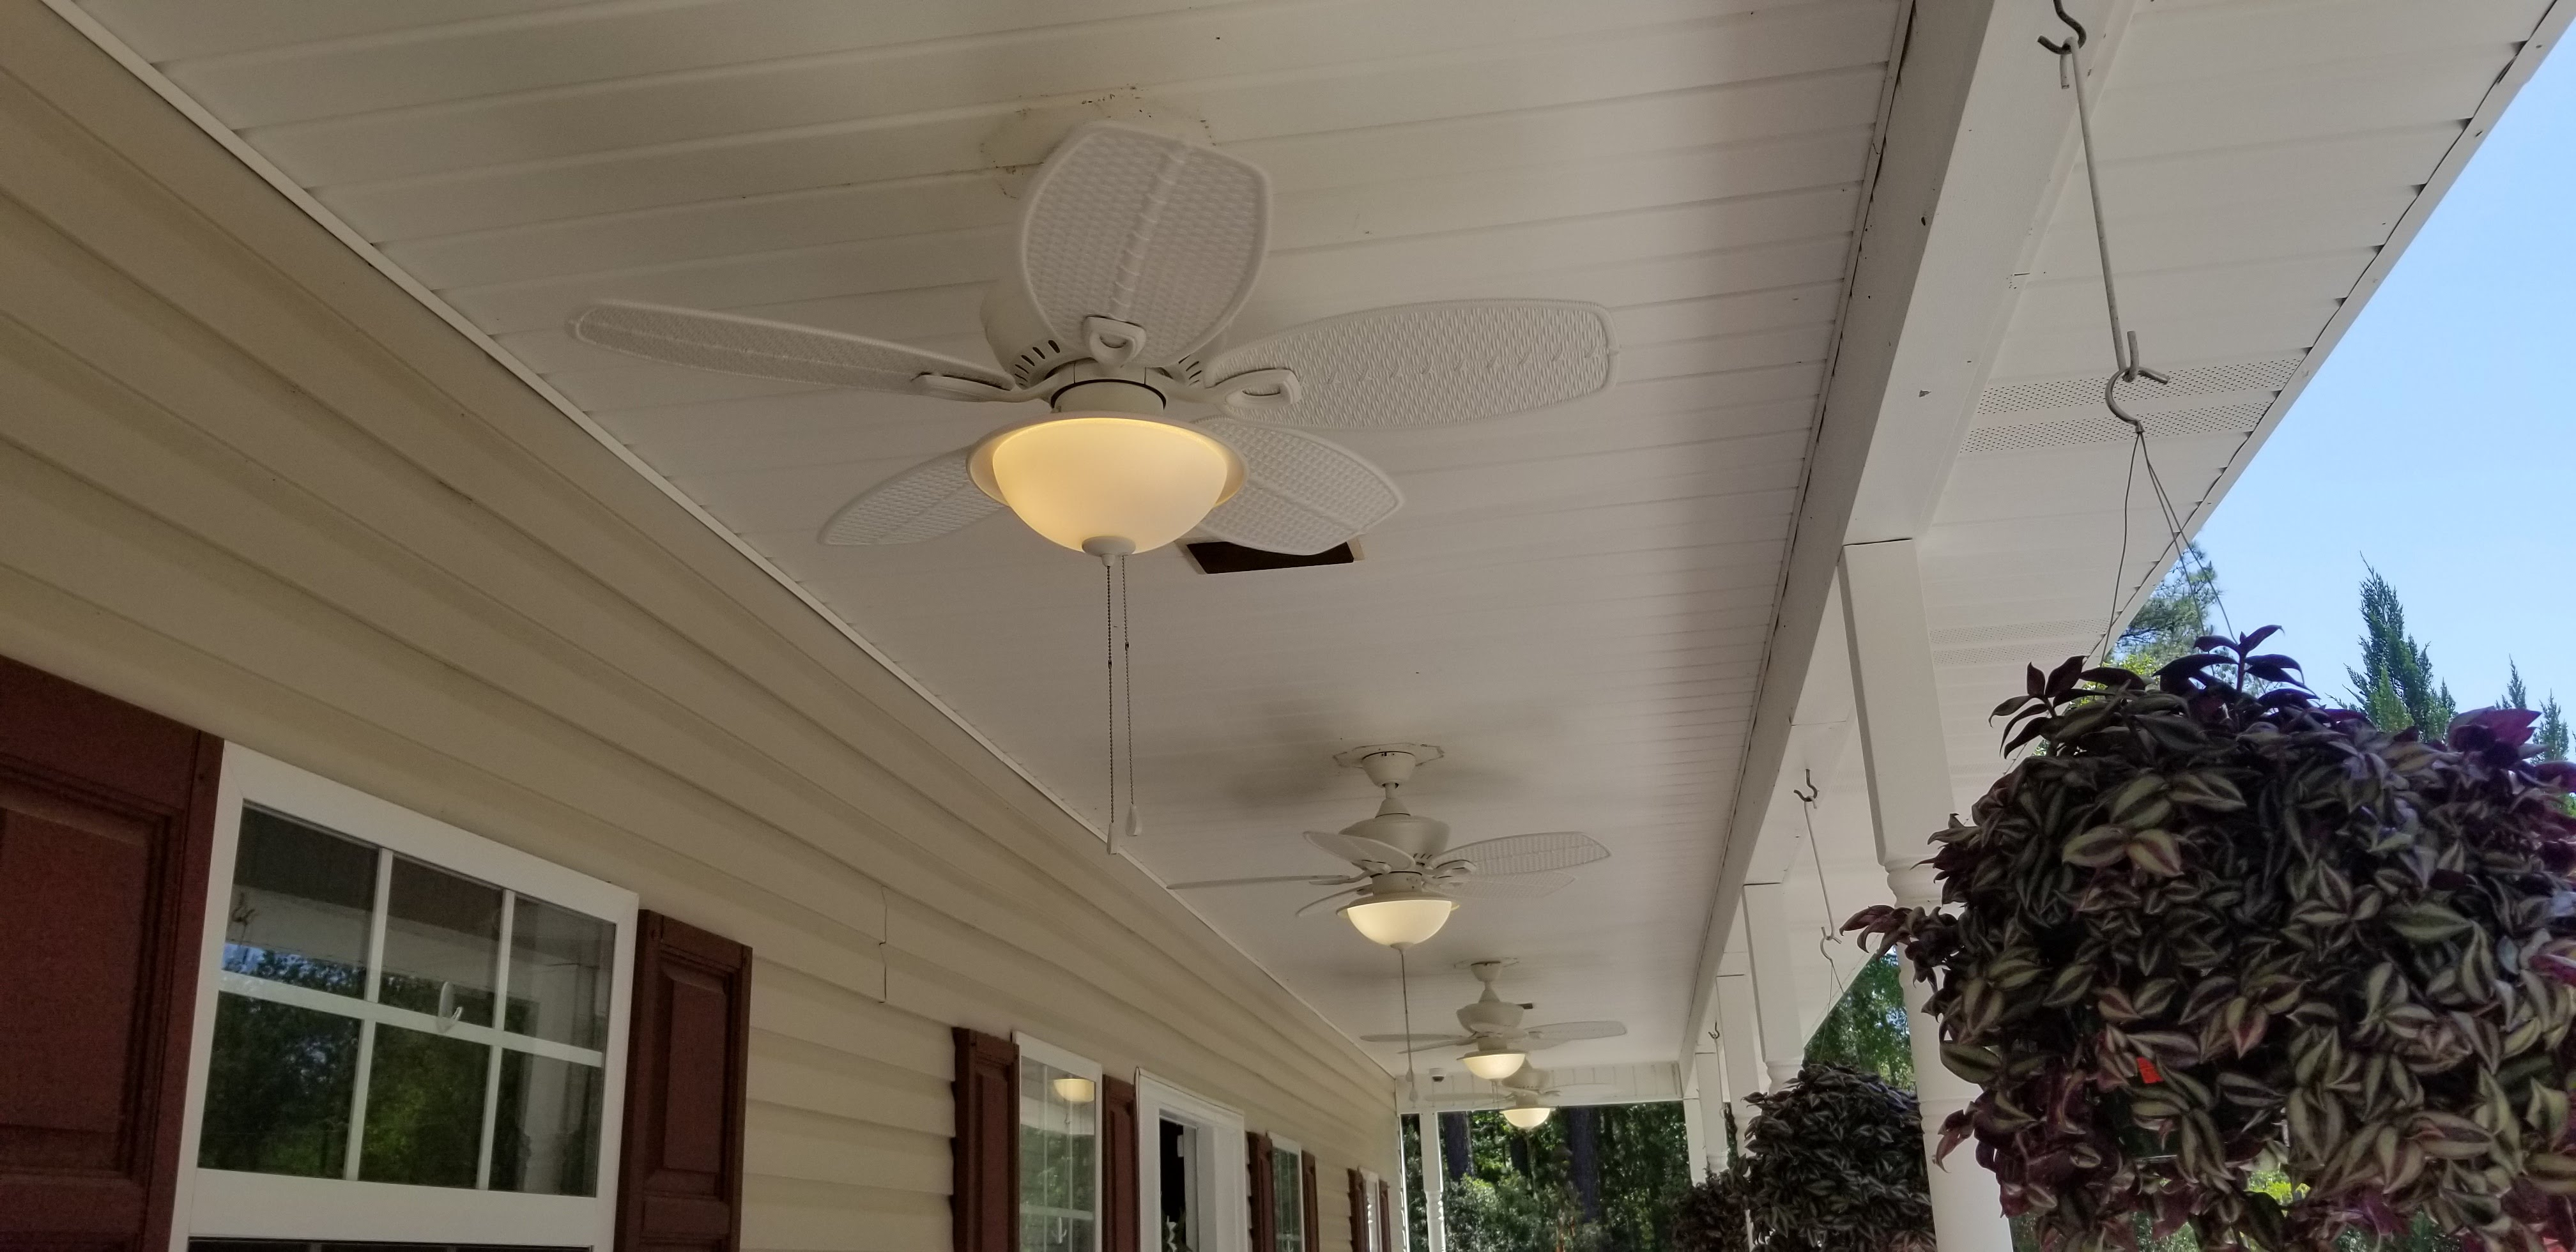 Ham Property Maintenance Provides Professional Ceiling Fan Installation Services Our Electrical Repairs Cover To Savannah